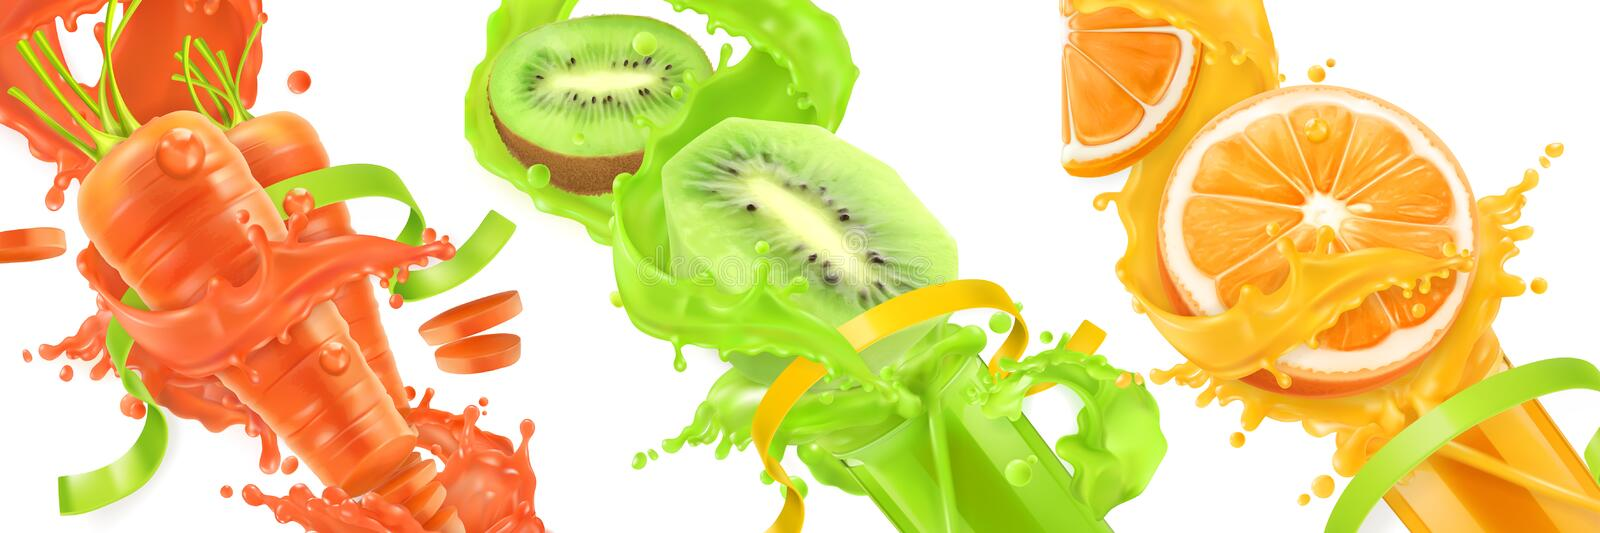 Carrots, kiwi, orange splash of juice. 3d vector icon se. Carrots, kiwi, orange splash of juice. Healthy food, sports and fitness. Natural fruit and vegetables stock illustration